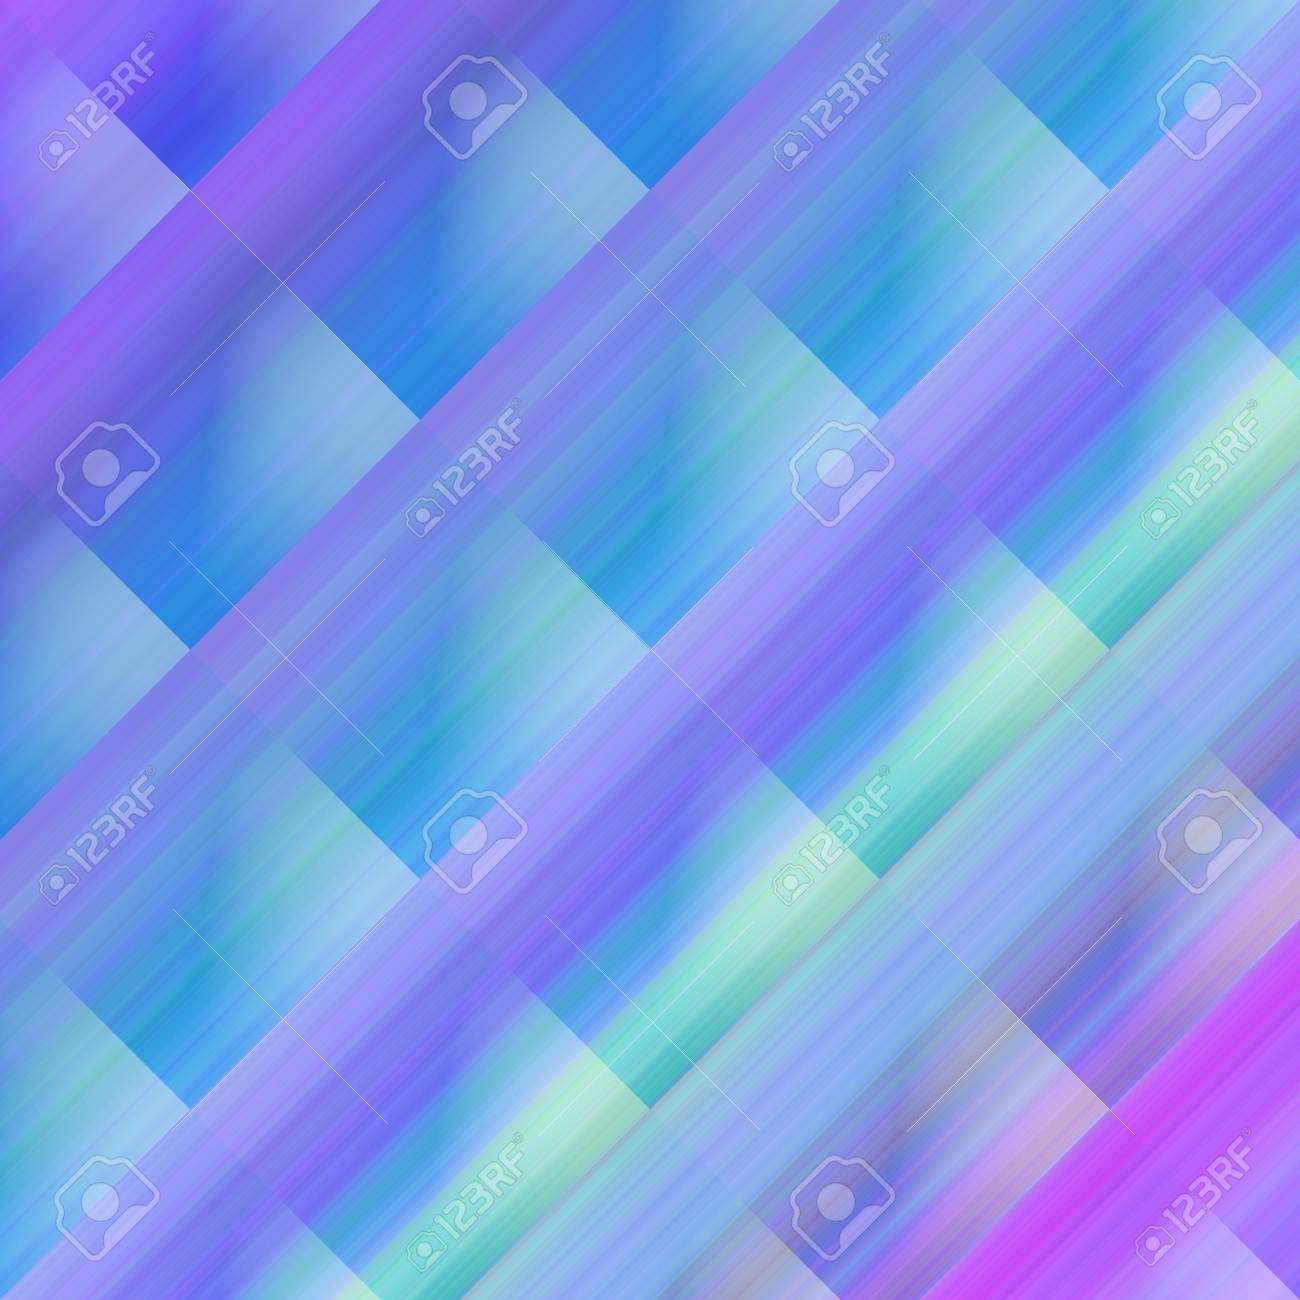 Abstract background image of blue and cold colors on squares Stock Photo - 6975117